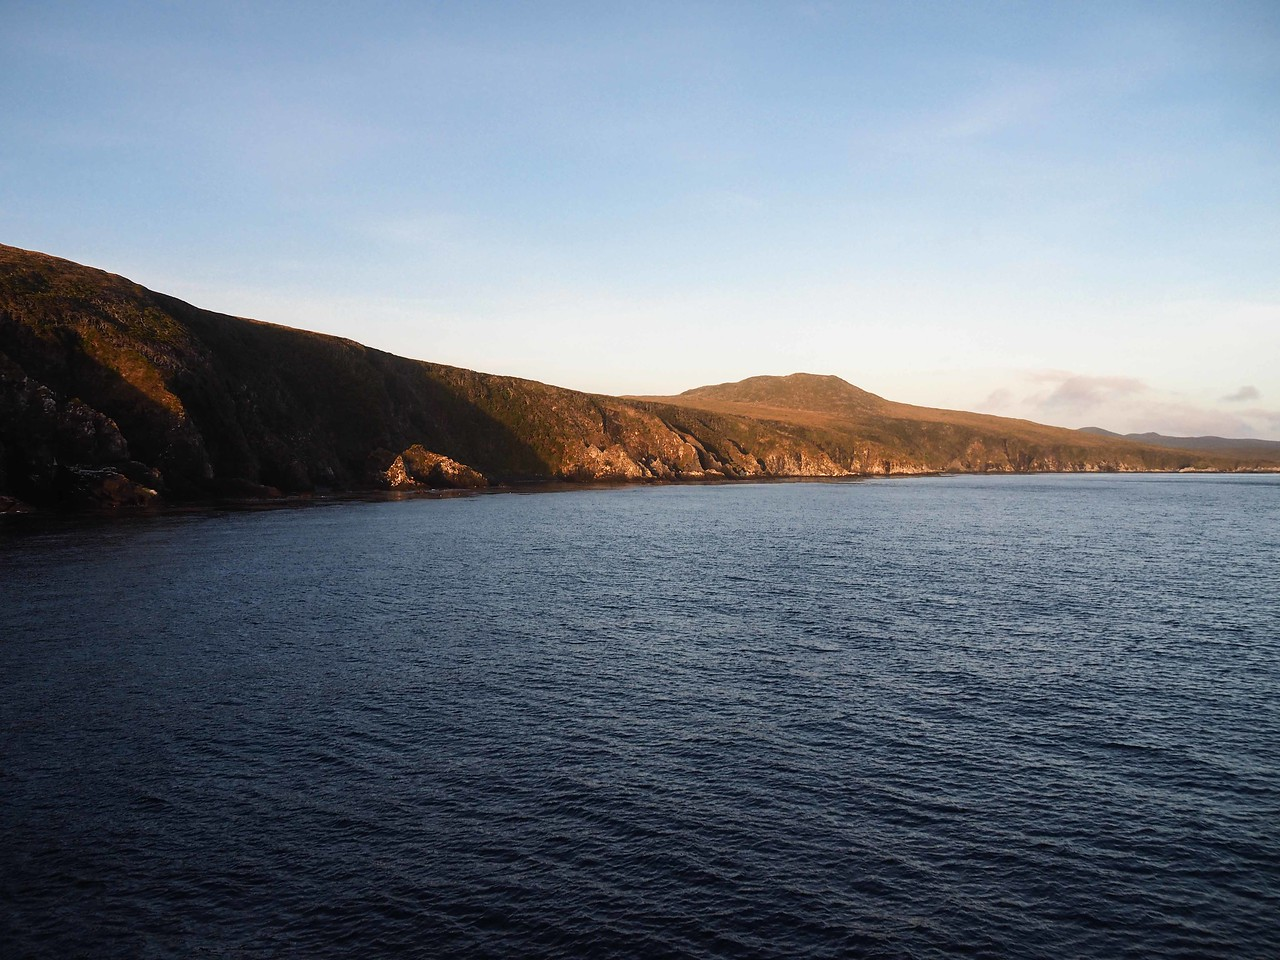 Isla Cabos del Hornos (Island of Cape Horn) in the Early Morning Light